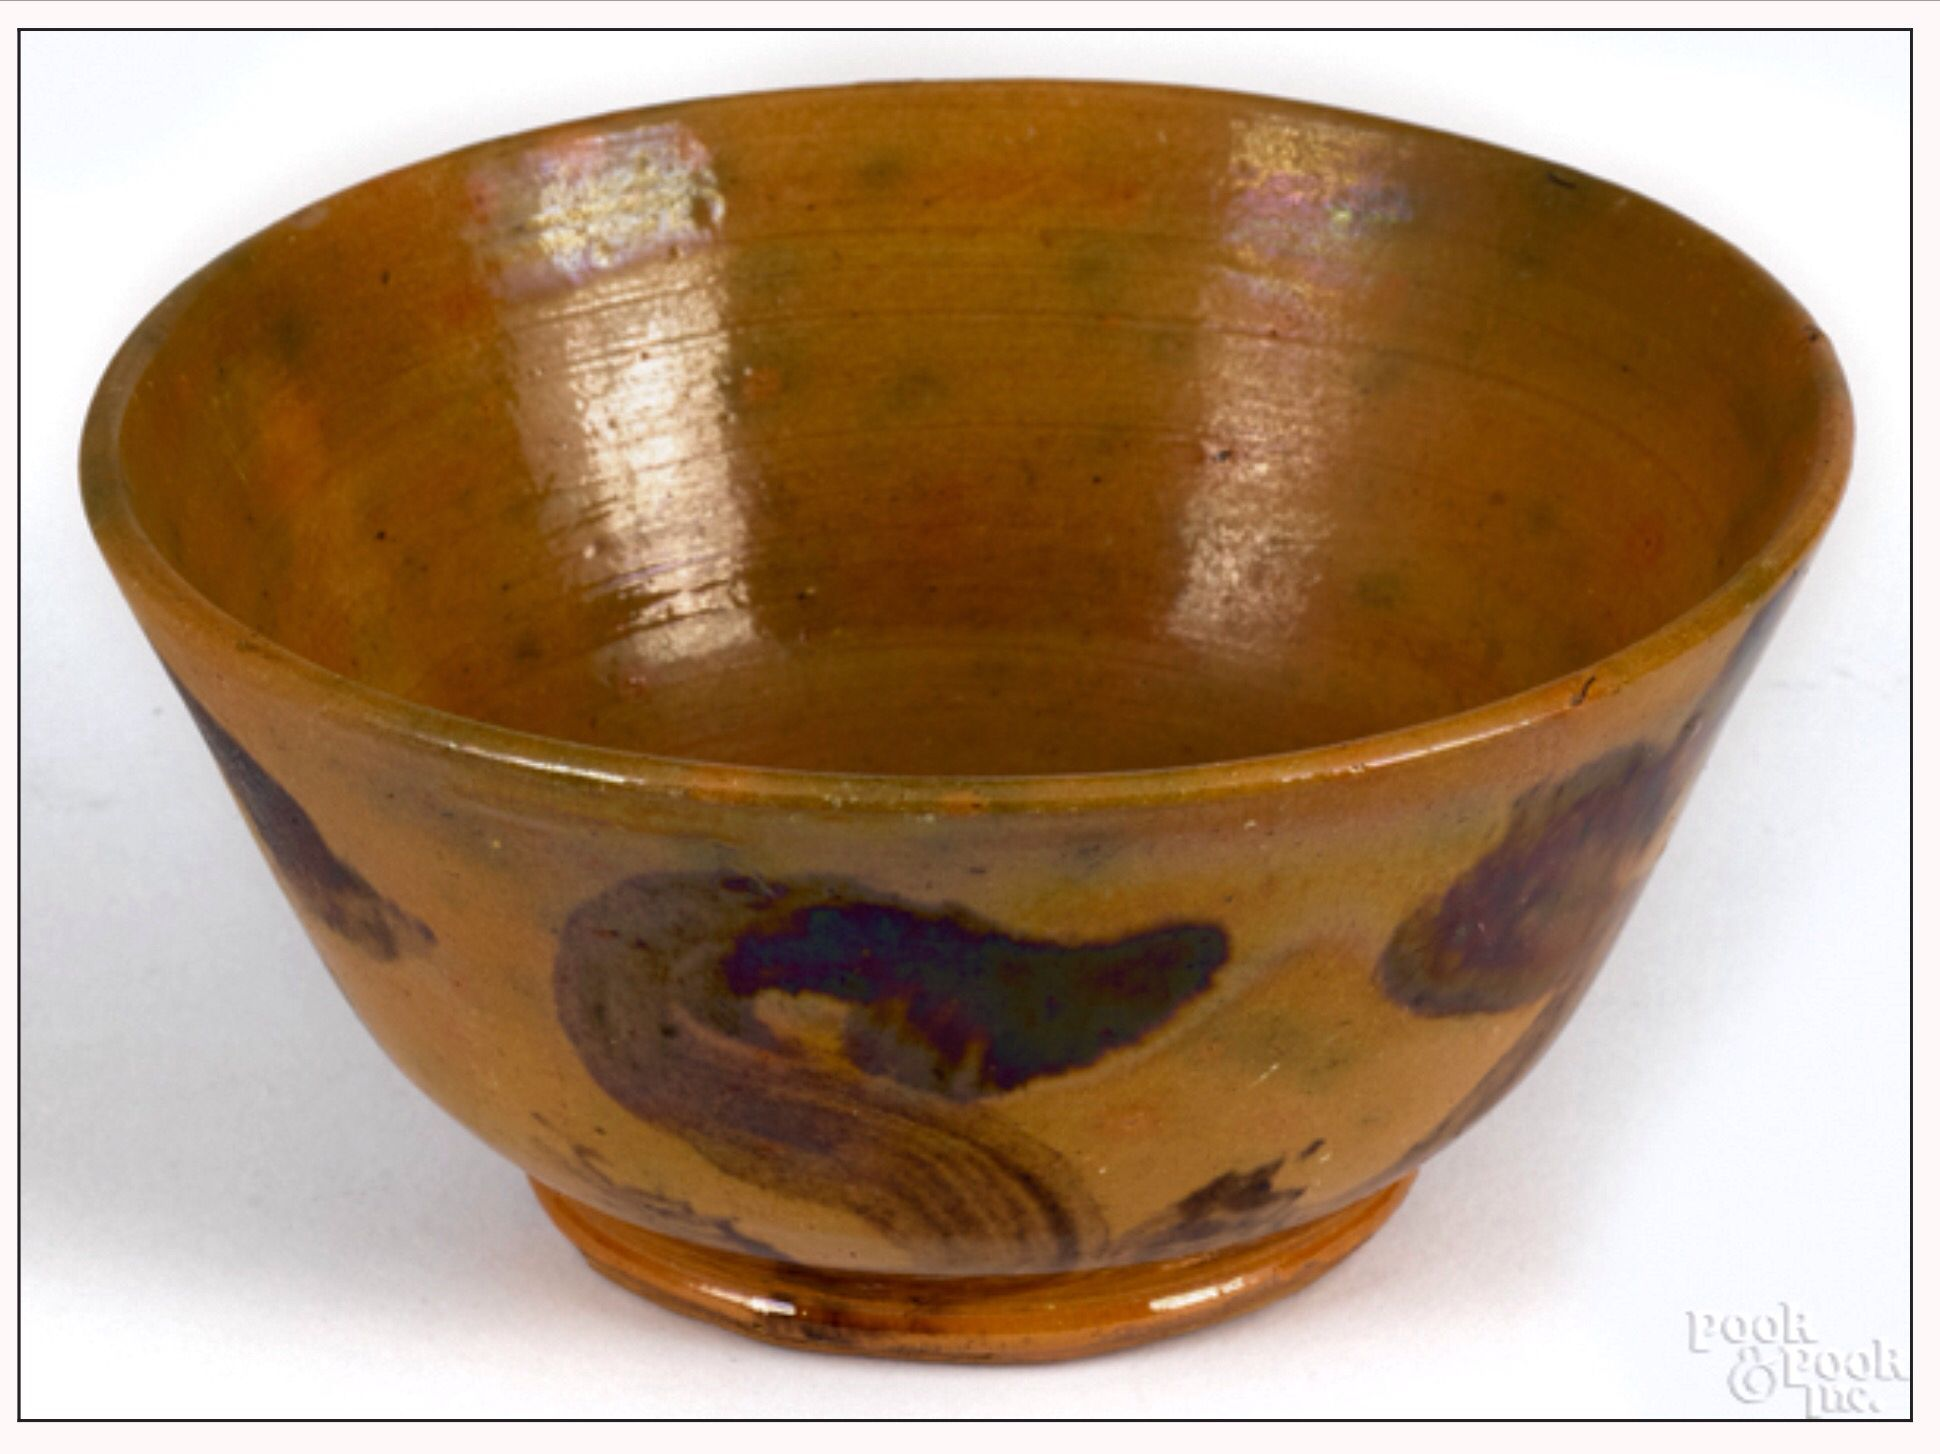 """Pook & Pook.  January 17th 2015. Lot 285.  Estimated: $1000 - $1500. Realized Price: $3600. Adams County, Pennsylvania redware bowl, inscribed Sol Miller 1872, having repeating manganese """"S"""" decoration around body, 2 3/4"""" h., 5 5/8"""" dia."""